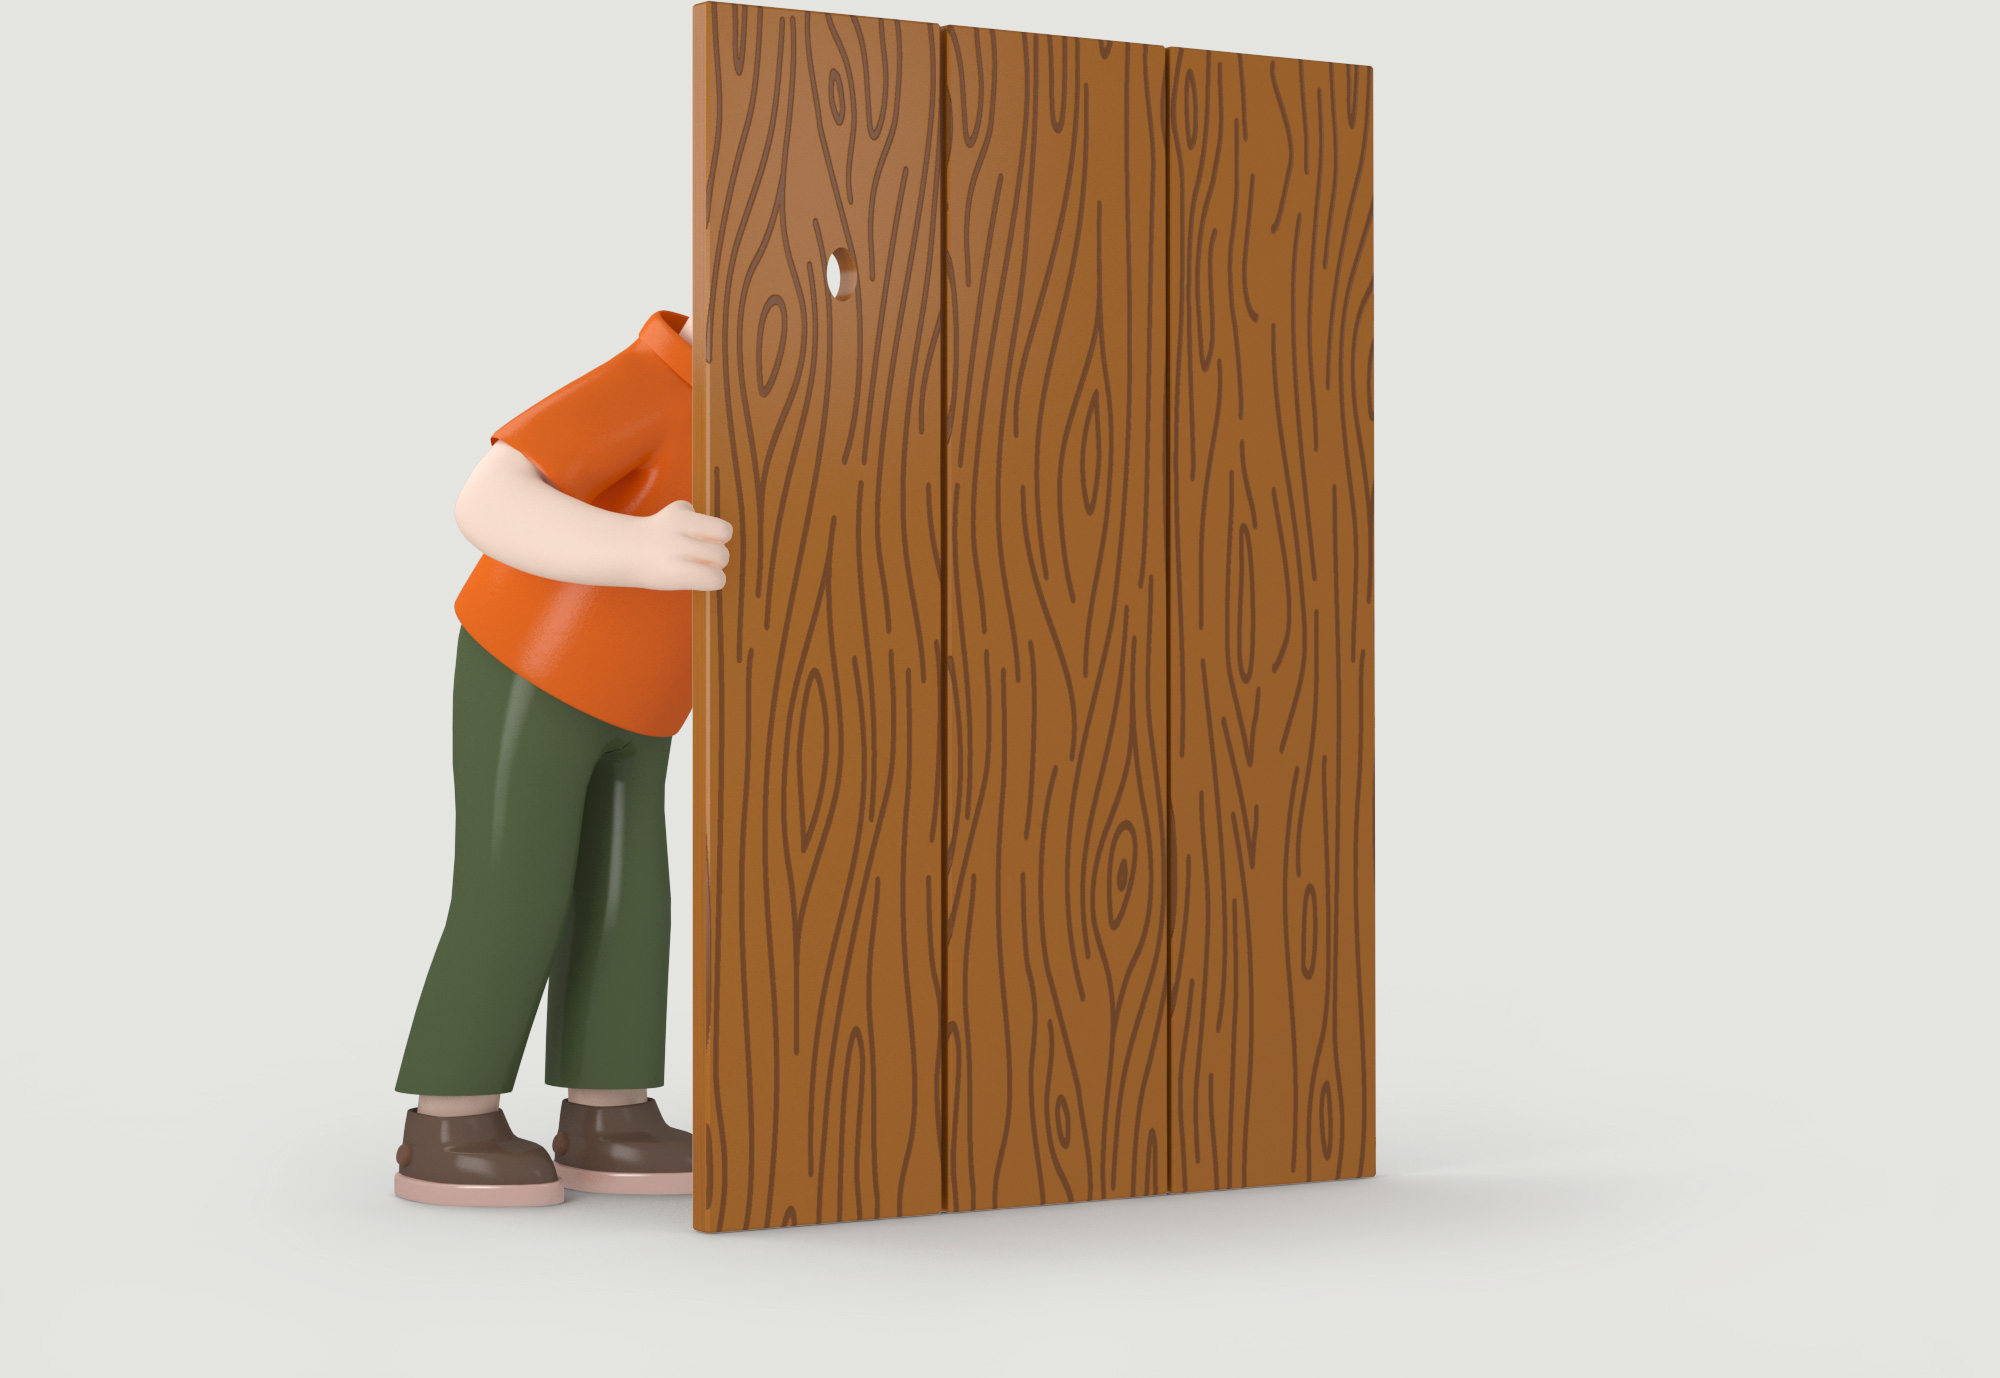 Man peeking through door